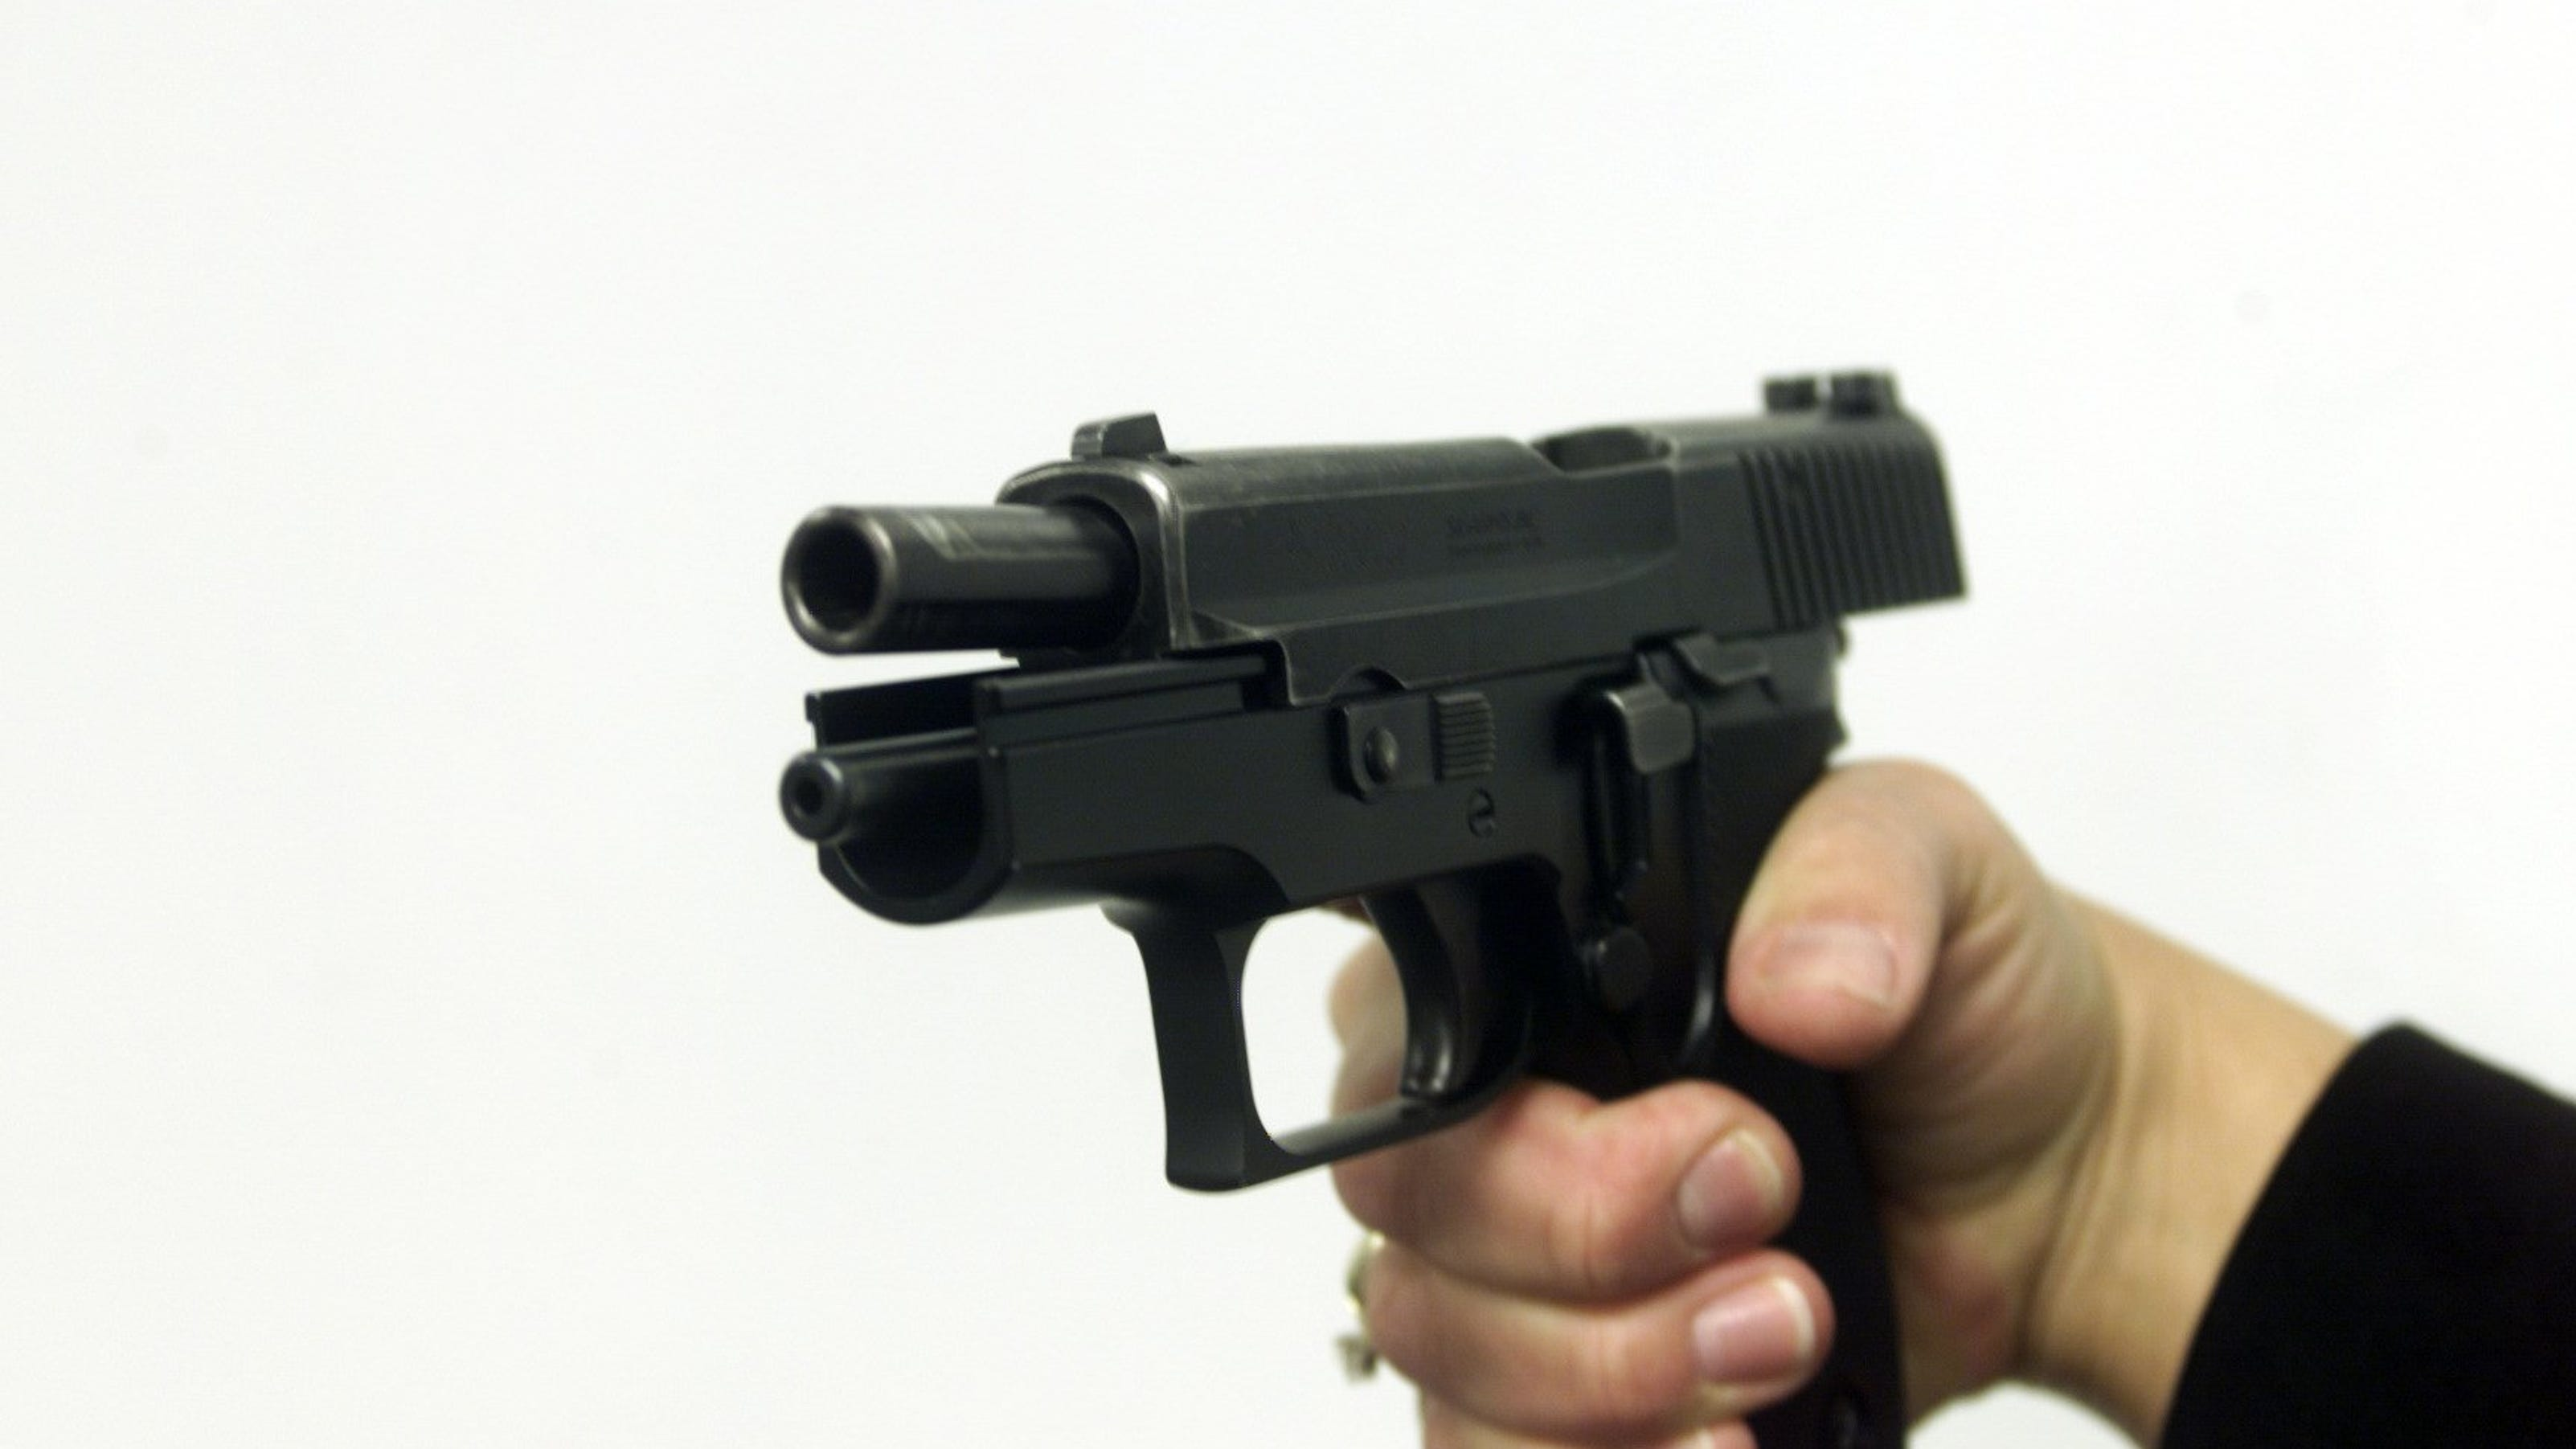 State law that would change concealed weapons restriction is a bad idea